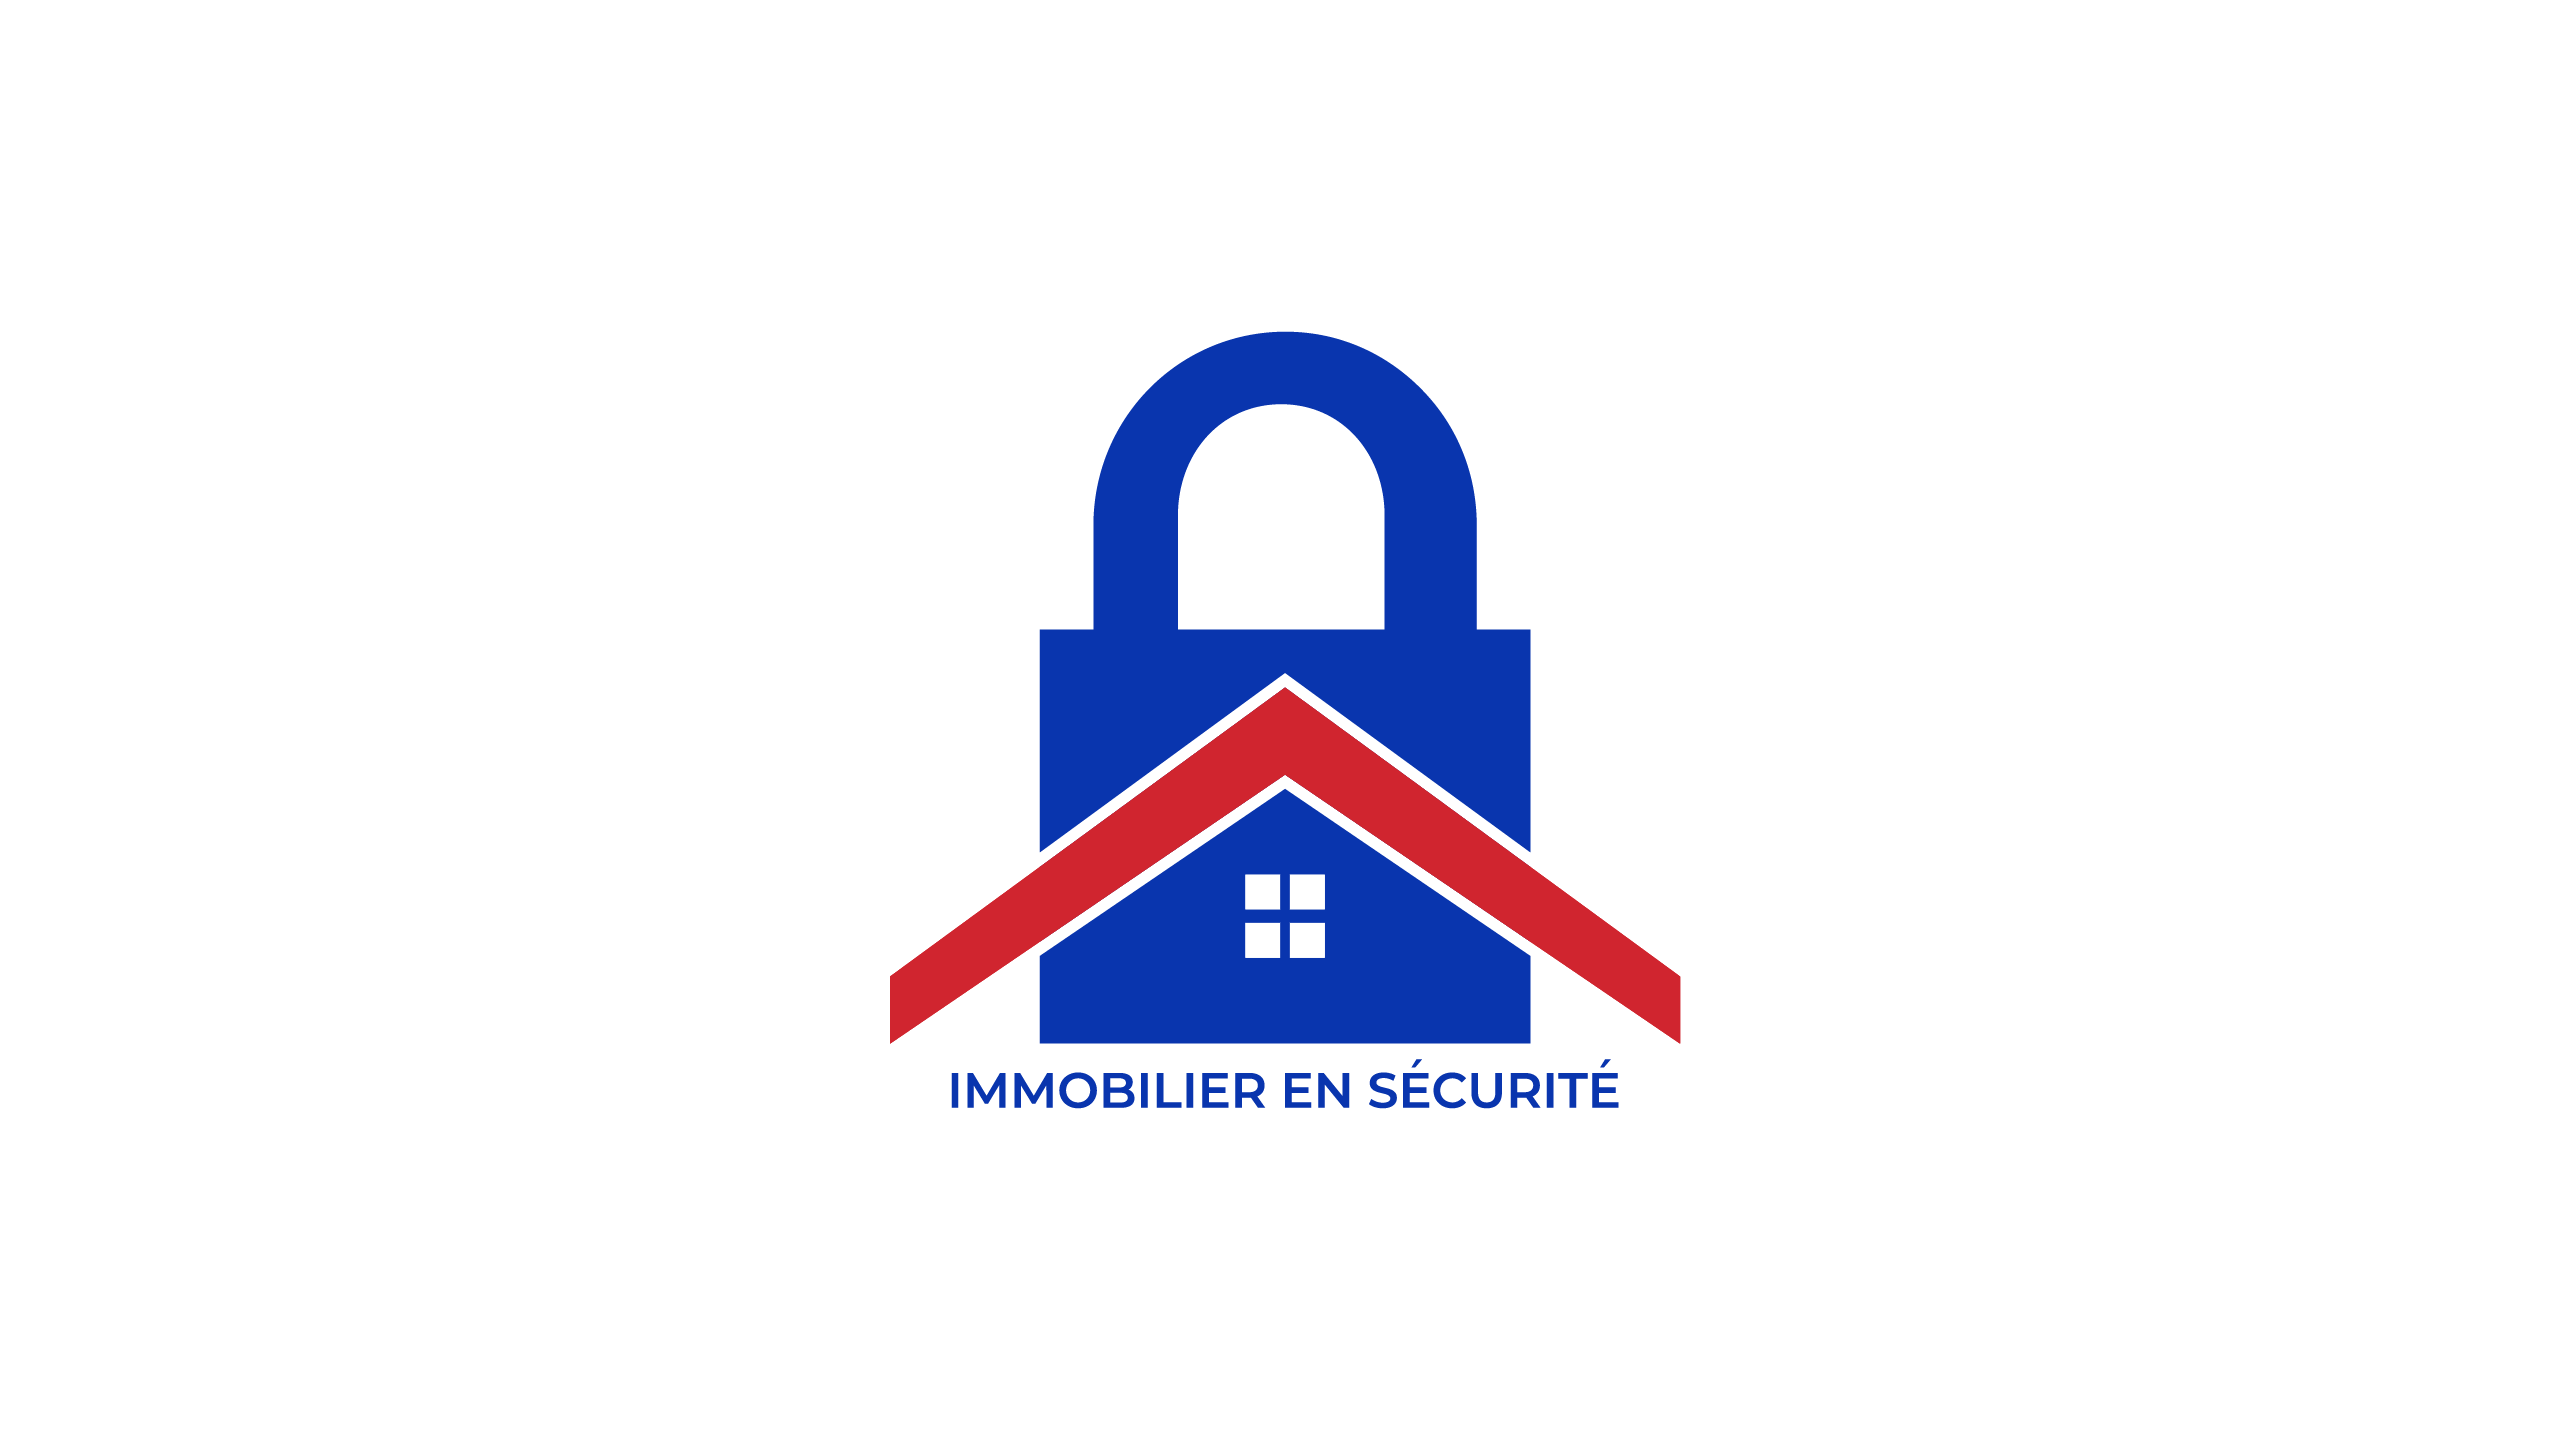 Сourtierimmobilier